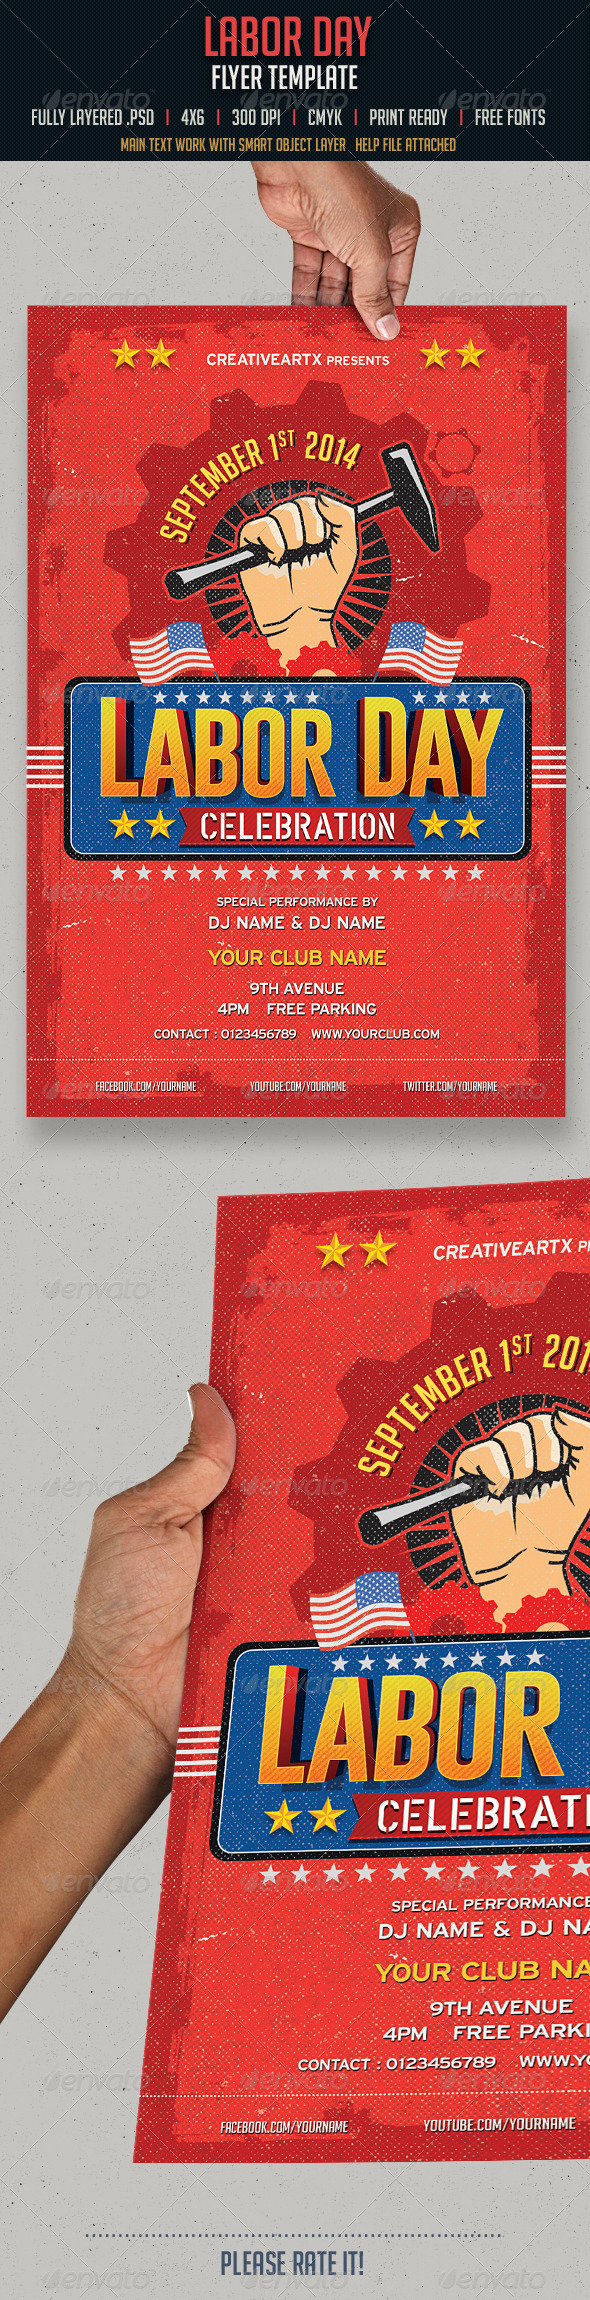 GraphicRiver Labor Day Flyer 8495503